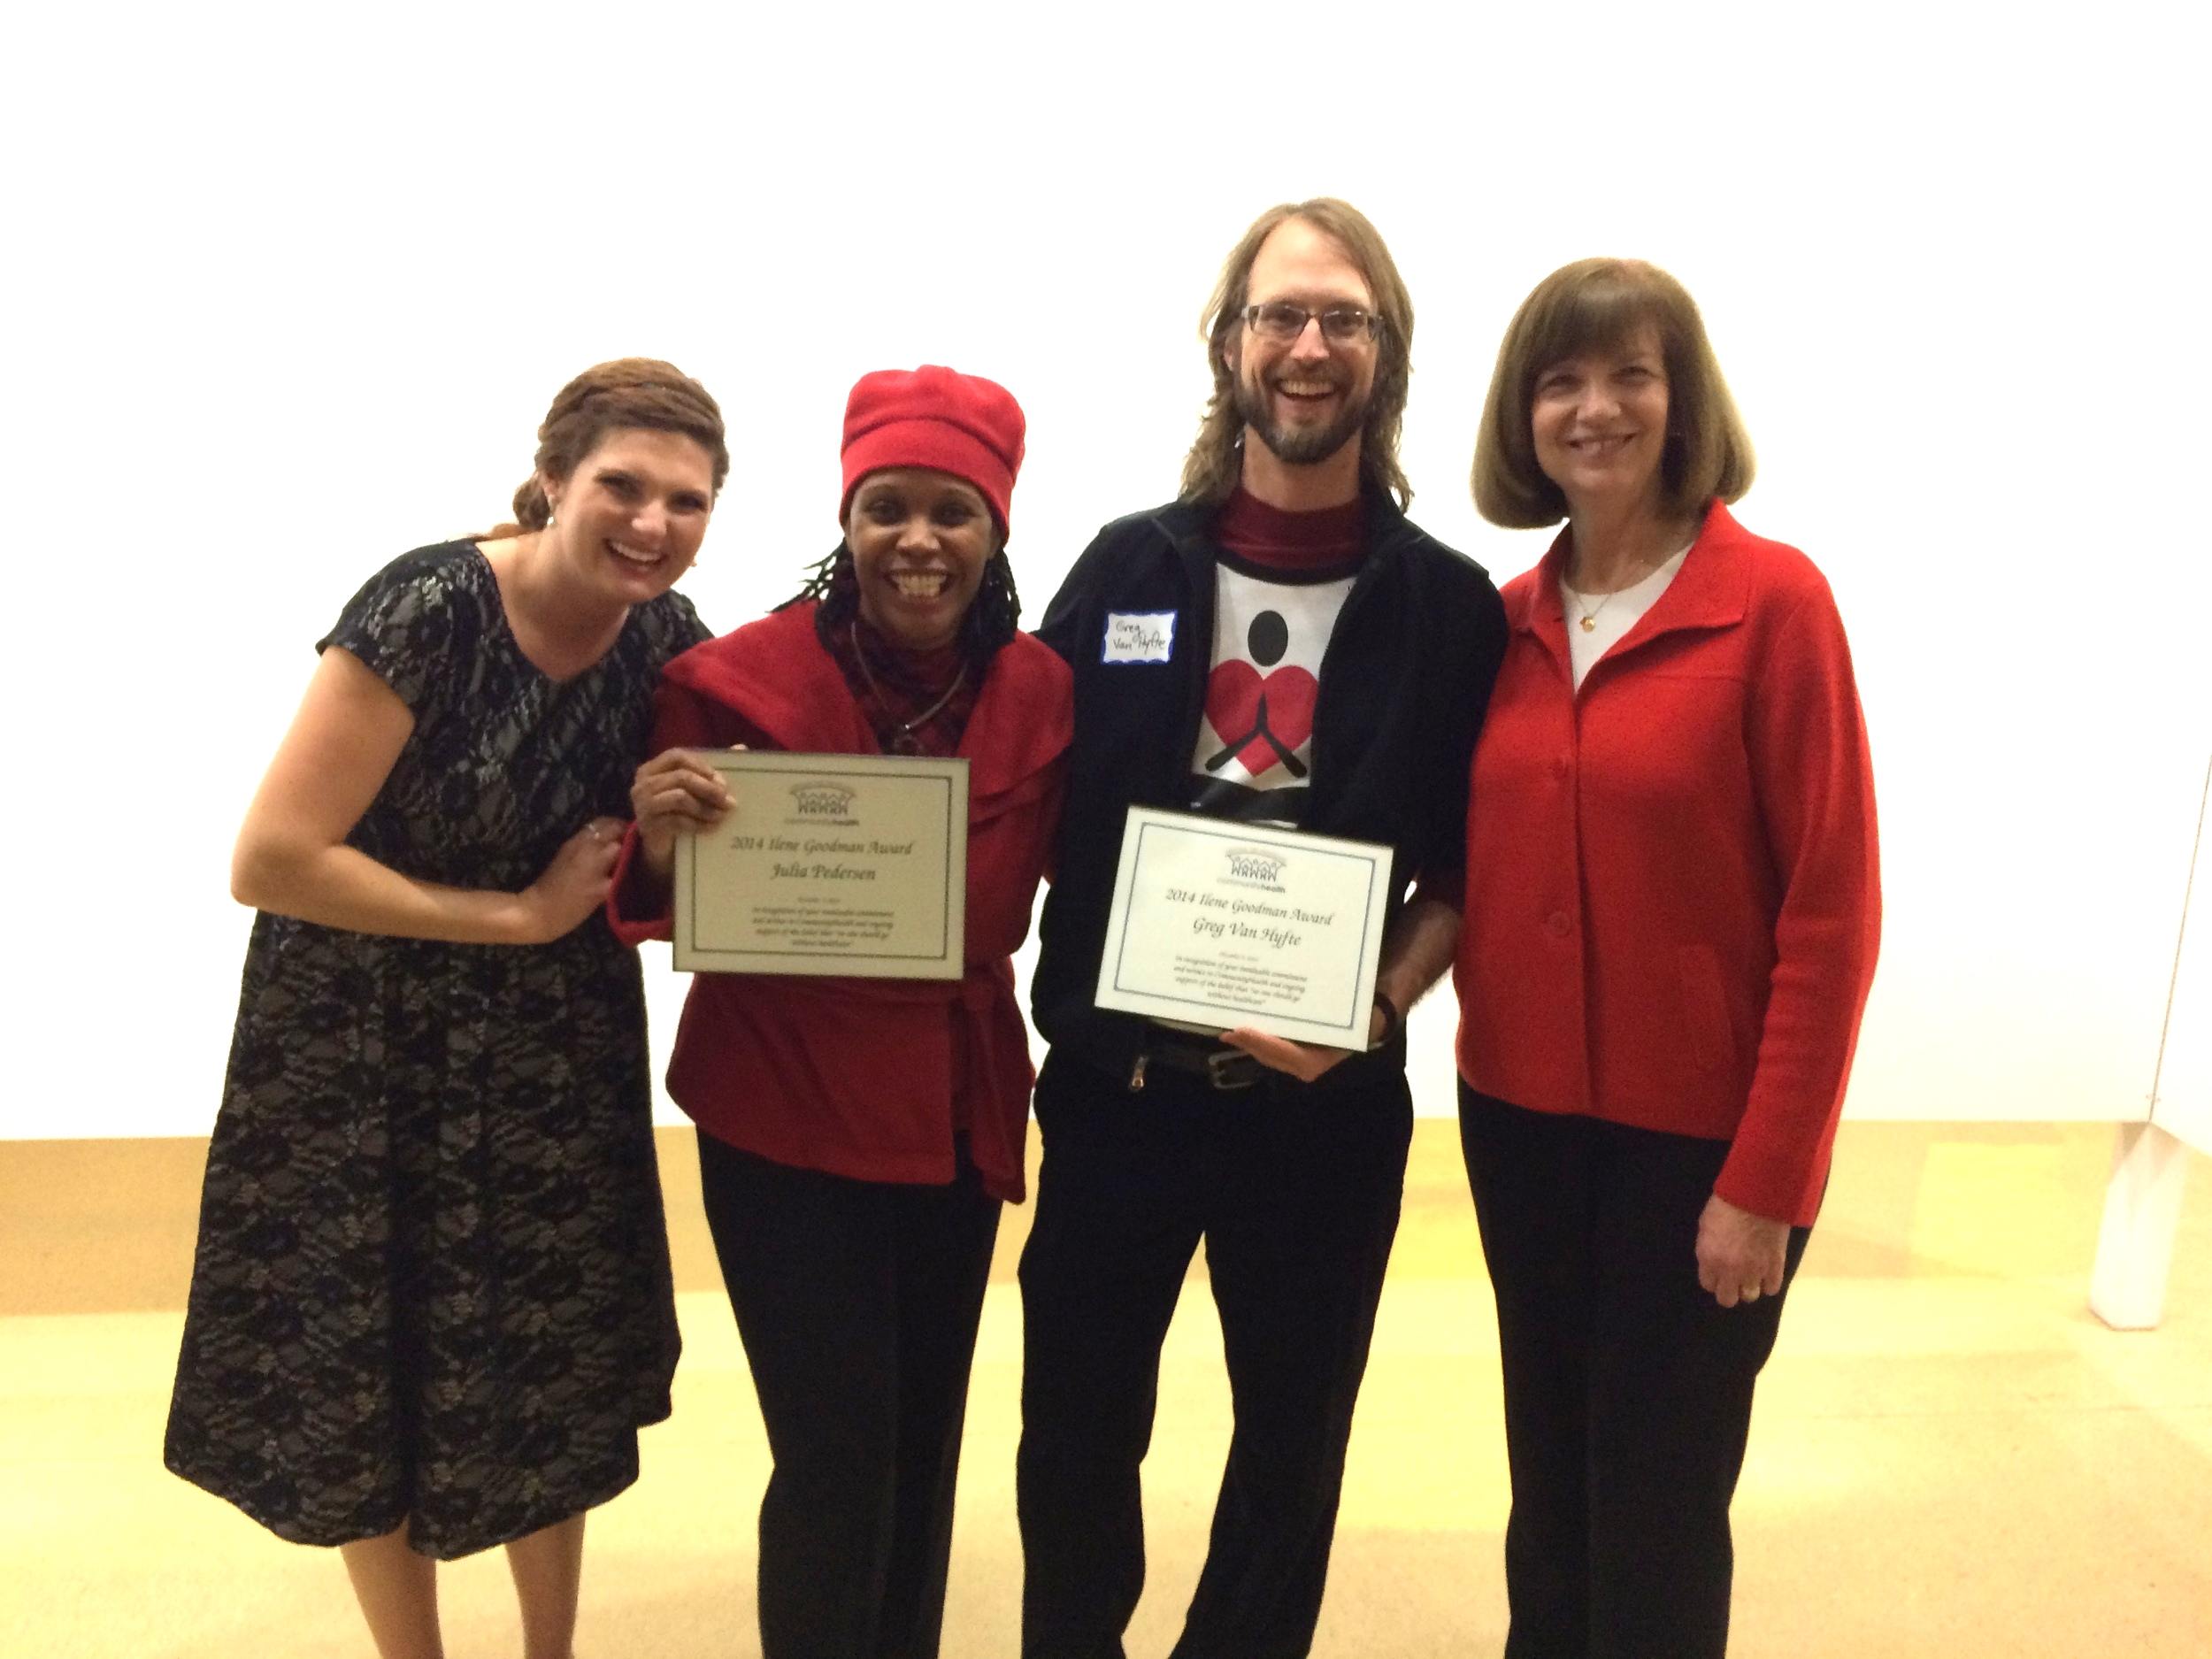 Pictured from left to right are CommunityHealth Heath Education Coordinator Adelle White, YogaCare Board Vice President Nubia Ptah, YogaCare Co-Founder Greg Van Hyfte, and CommunityHealth Executive Director Judy Haasis at the 2014 CommunityHealth Volunteer Party.